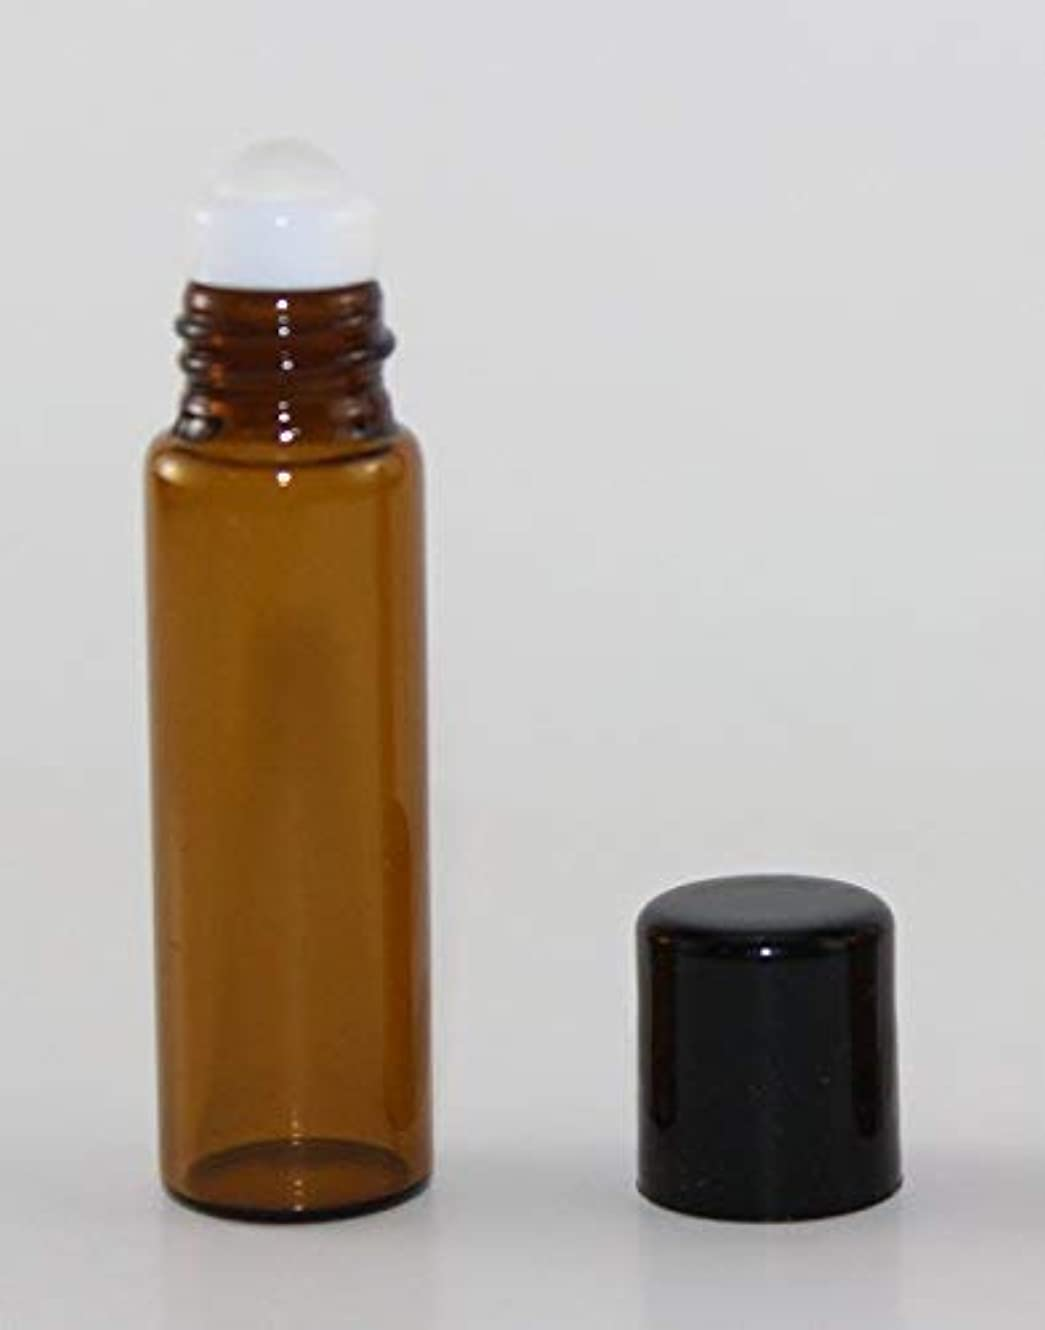 USA 72 Amber Glass 5 ml Roll-On Glass Bottles with GLASS Roller Roll On Balls - Refillable Aromatherapy Essential...